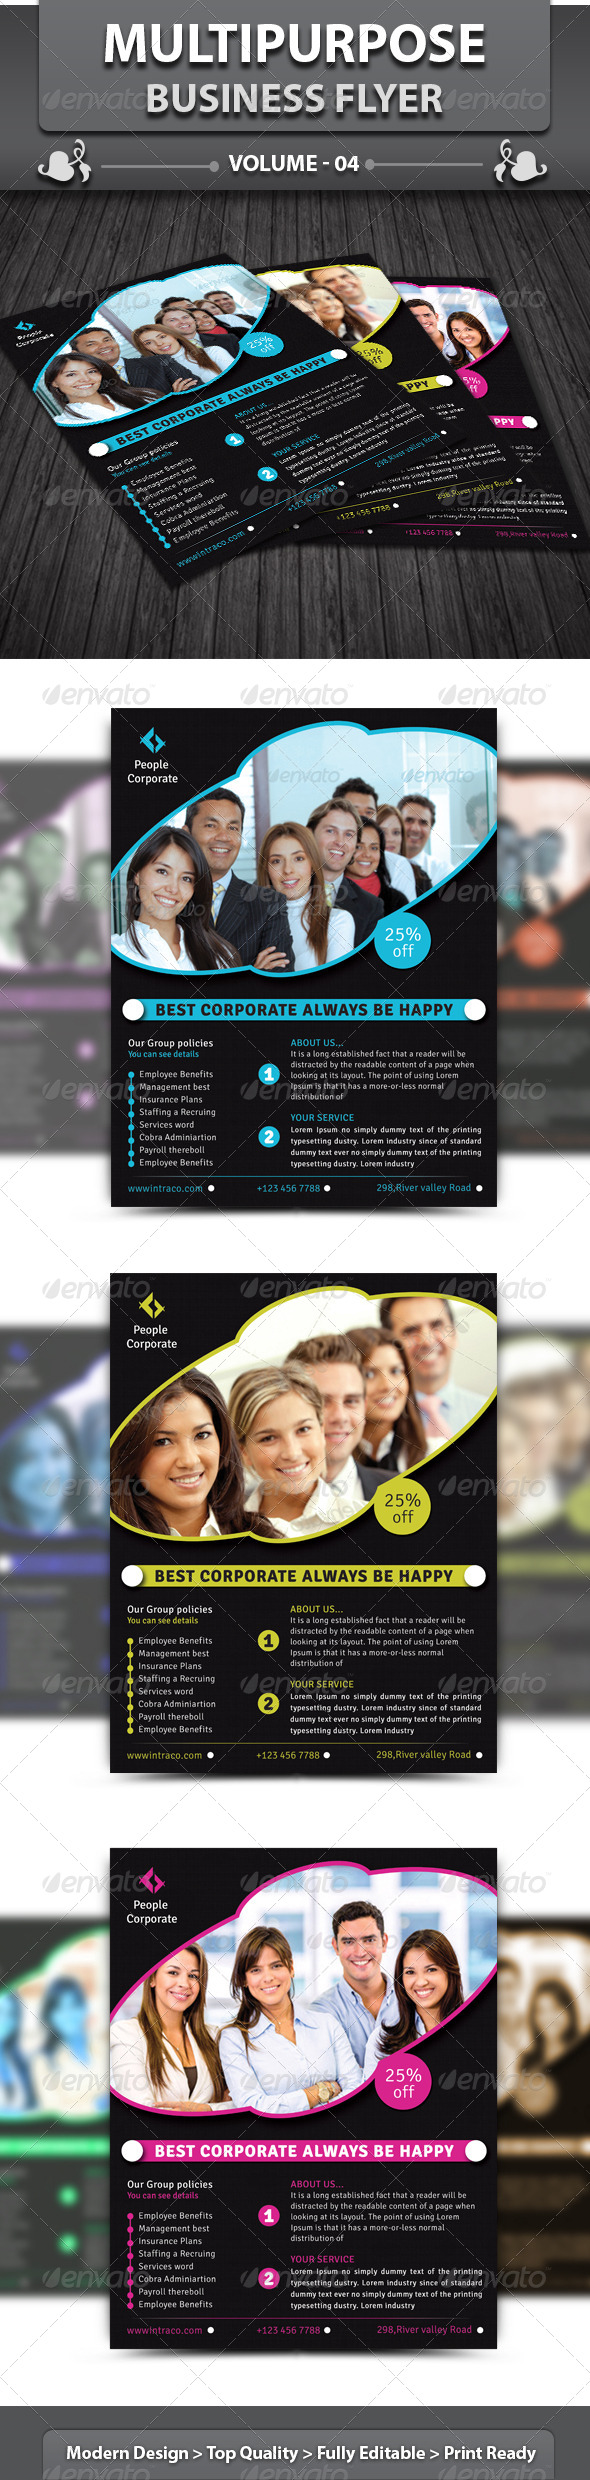 GraphicRiver Multipurpose Business Flyer V 4 4413384